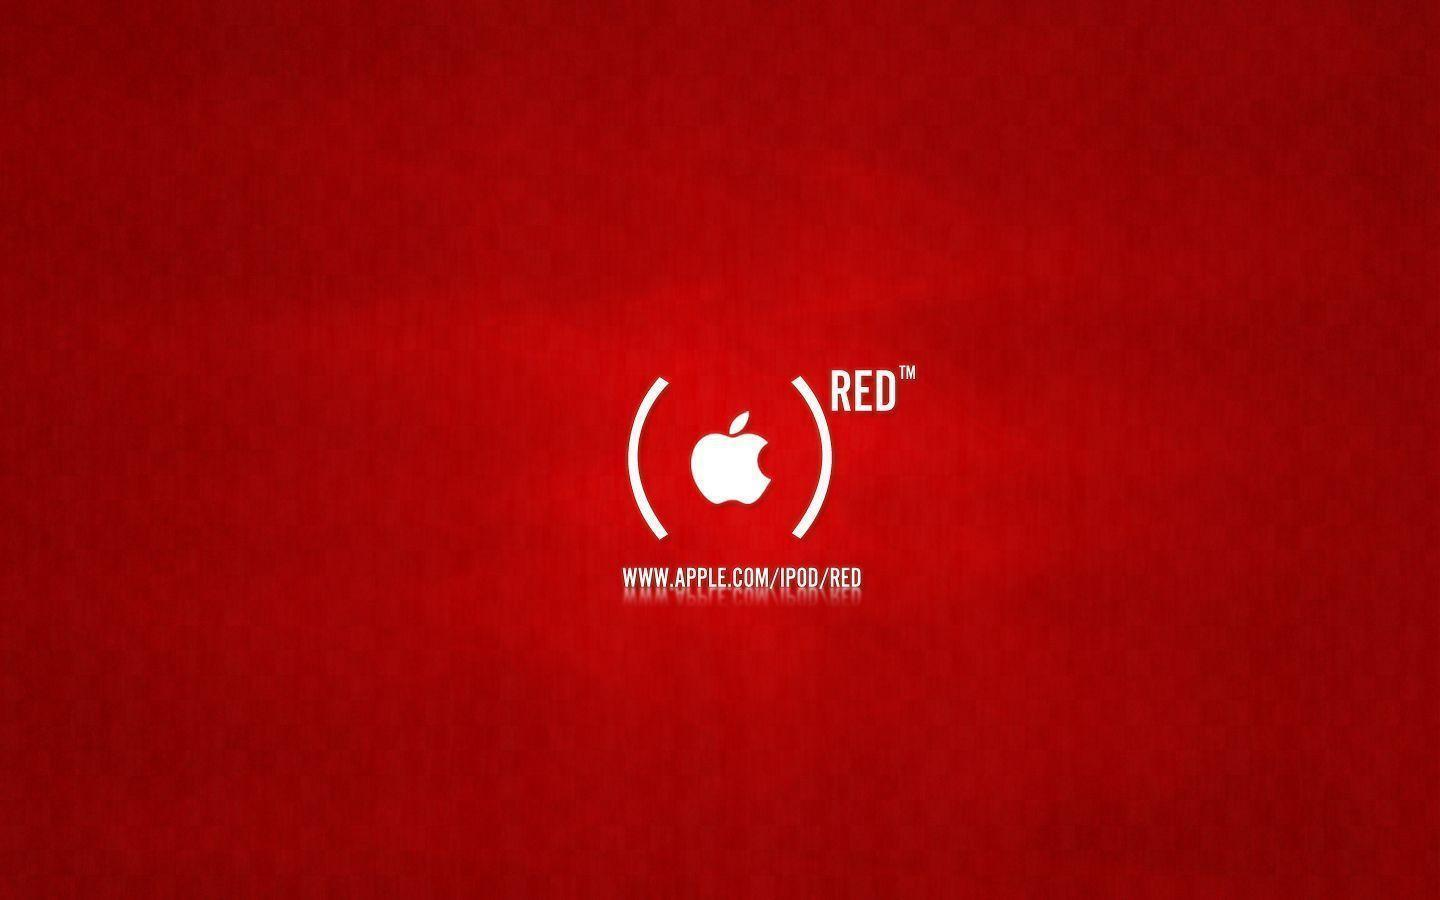 Iphone Product Red Wallpaper Red Apple Logo Wallpapers Wallpaper Cave